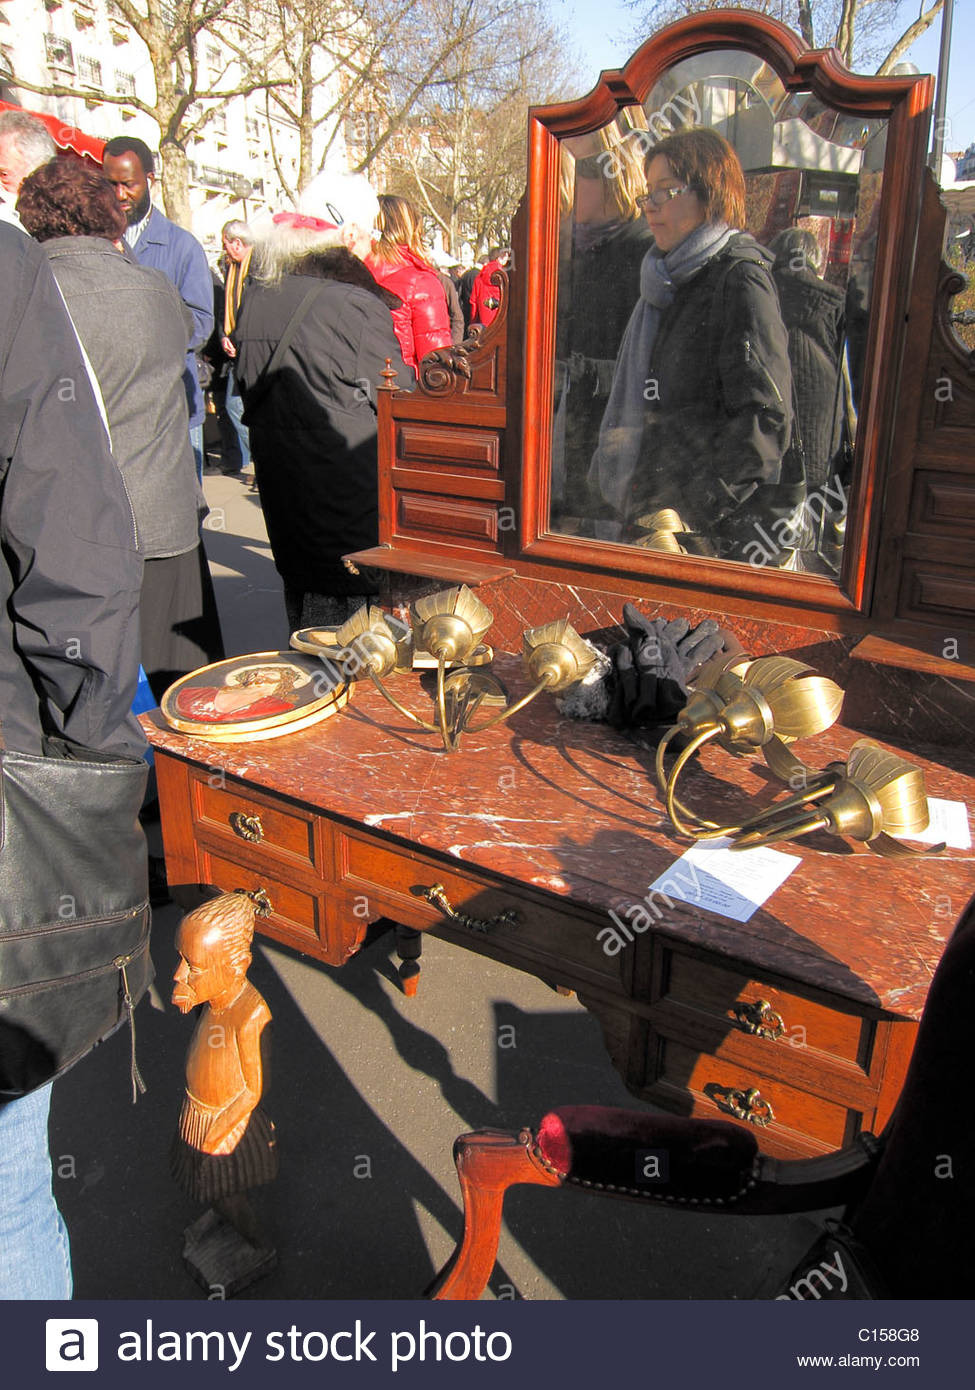 paris france people shopping in french flea market brocante antique C158G8